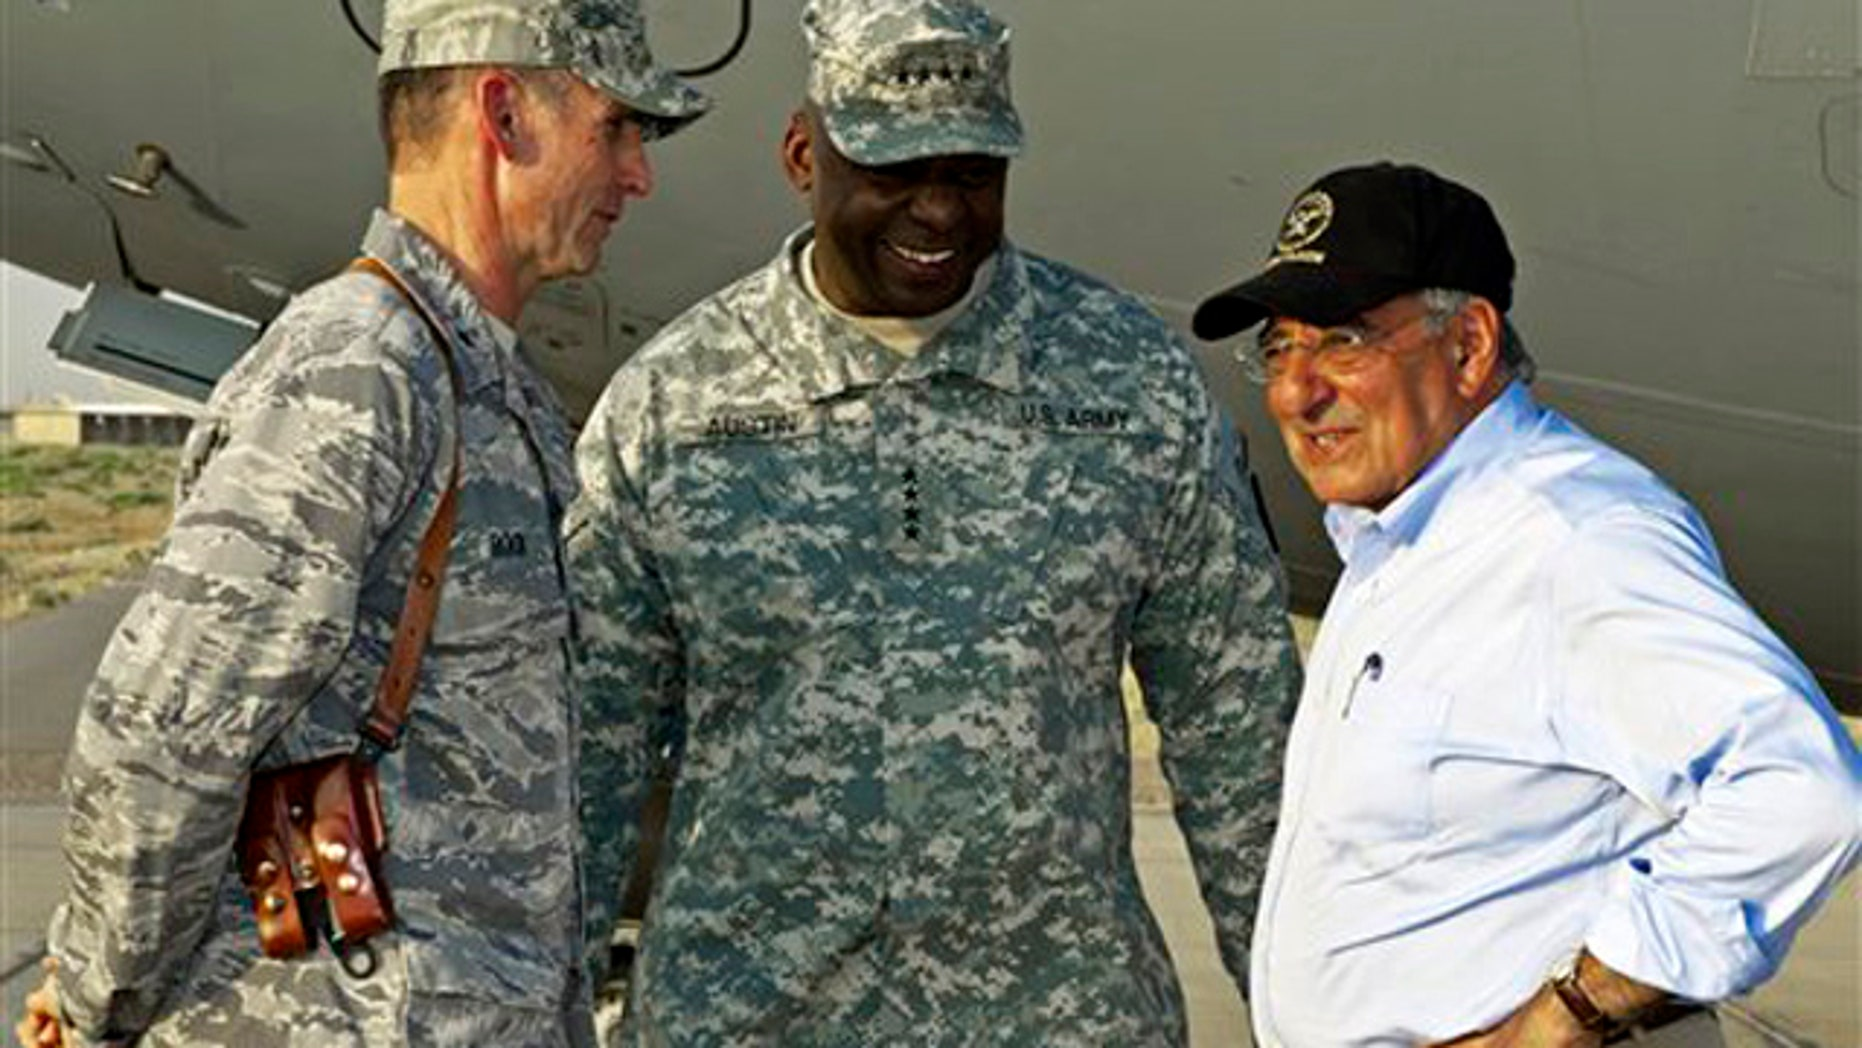 US Secretary of Defense Leon Panetta, right,  has a brief chat with his US Generals Anthony Rock, left, and Lloyd Austin, late Sunday July 10, 2011, during an unannounced visit by the U.S. Secretary to Camp Dwyer, Sunday July 10, 2011, in southern Afghanistan. (AP  Photo/Paul J. Richards, Pool)